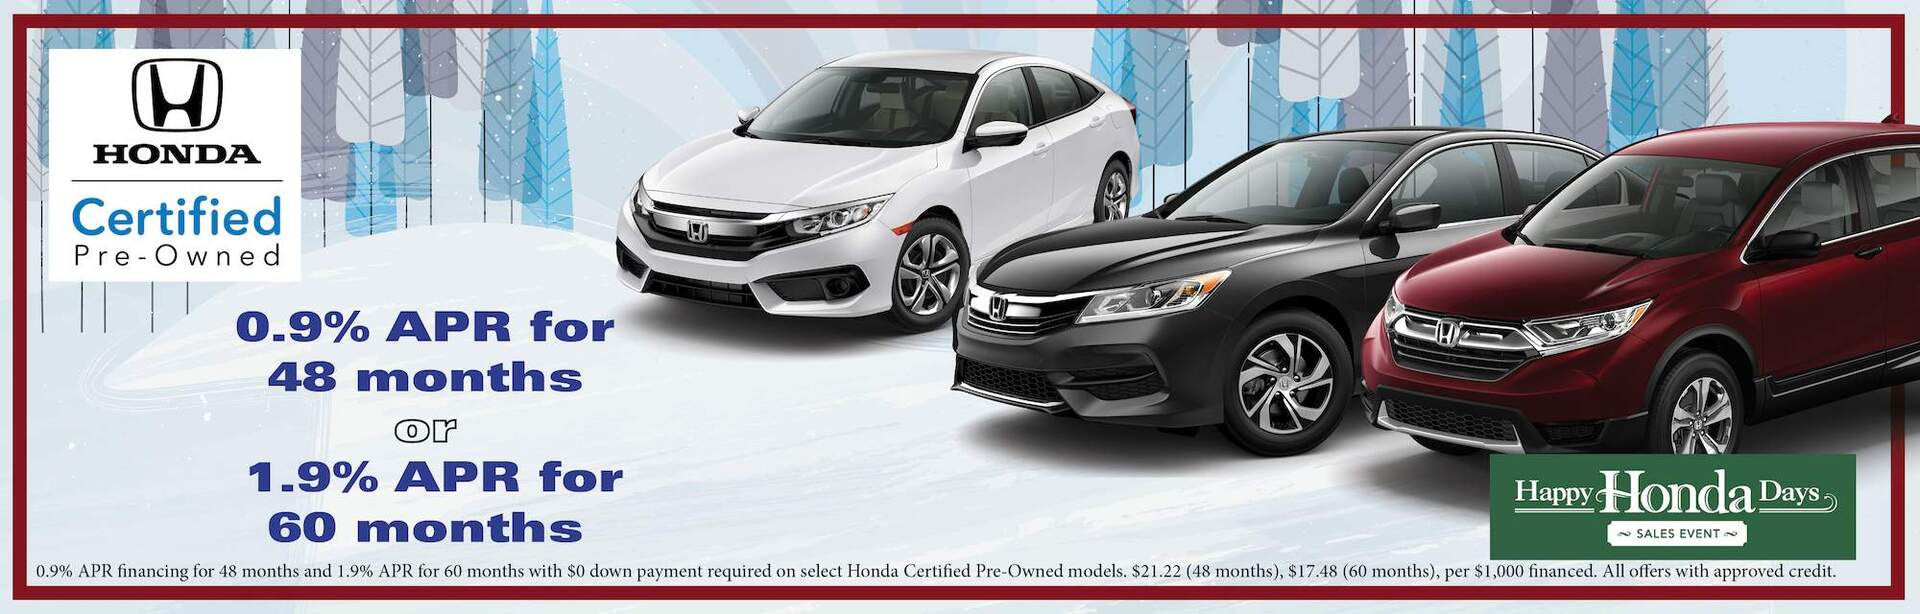 Honda Certified APR Special